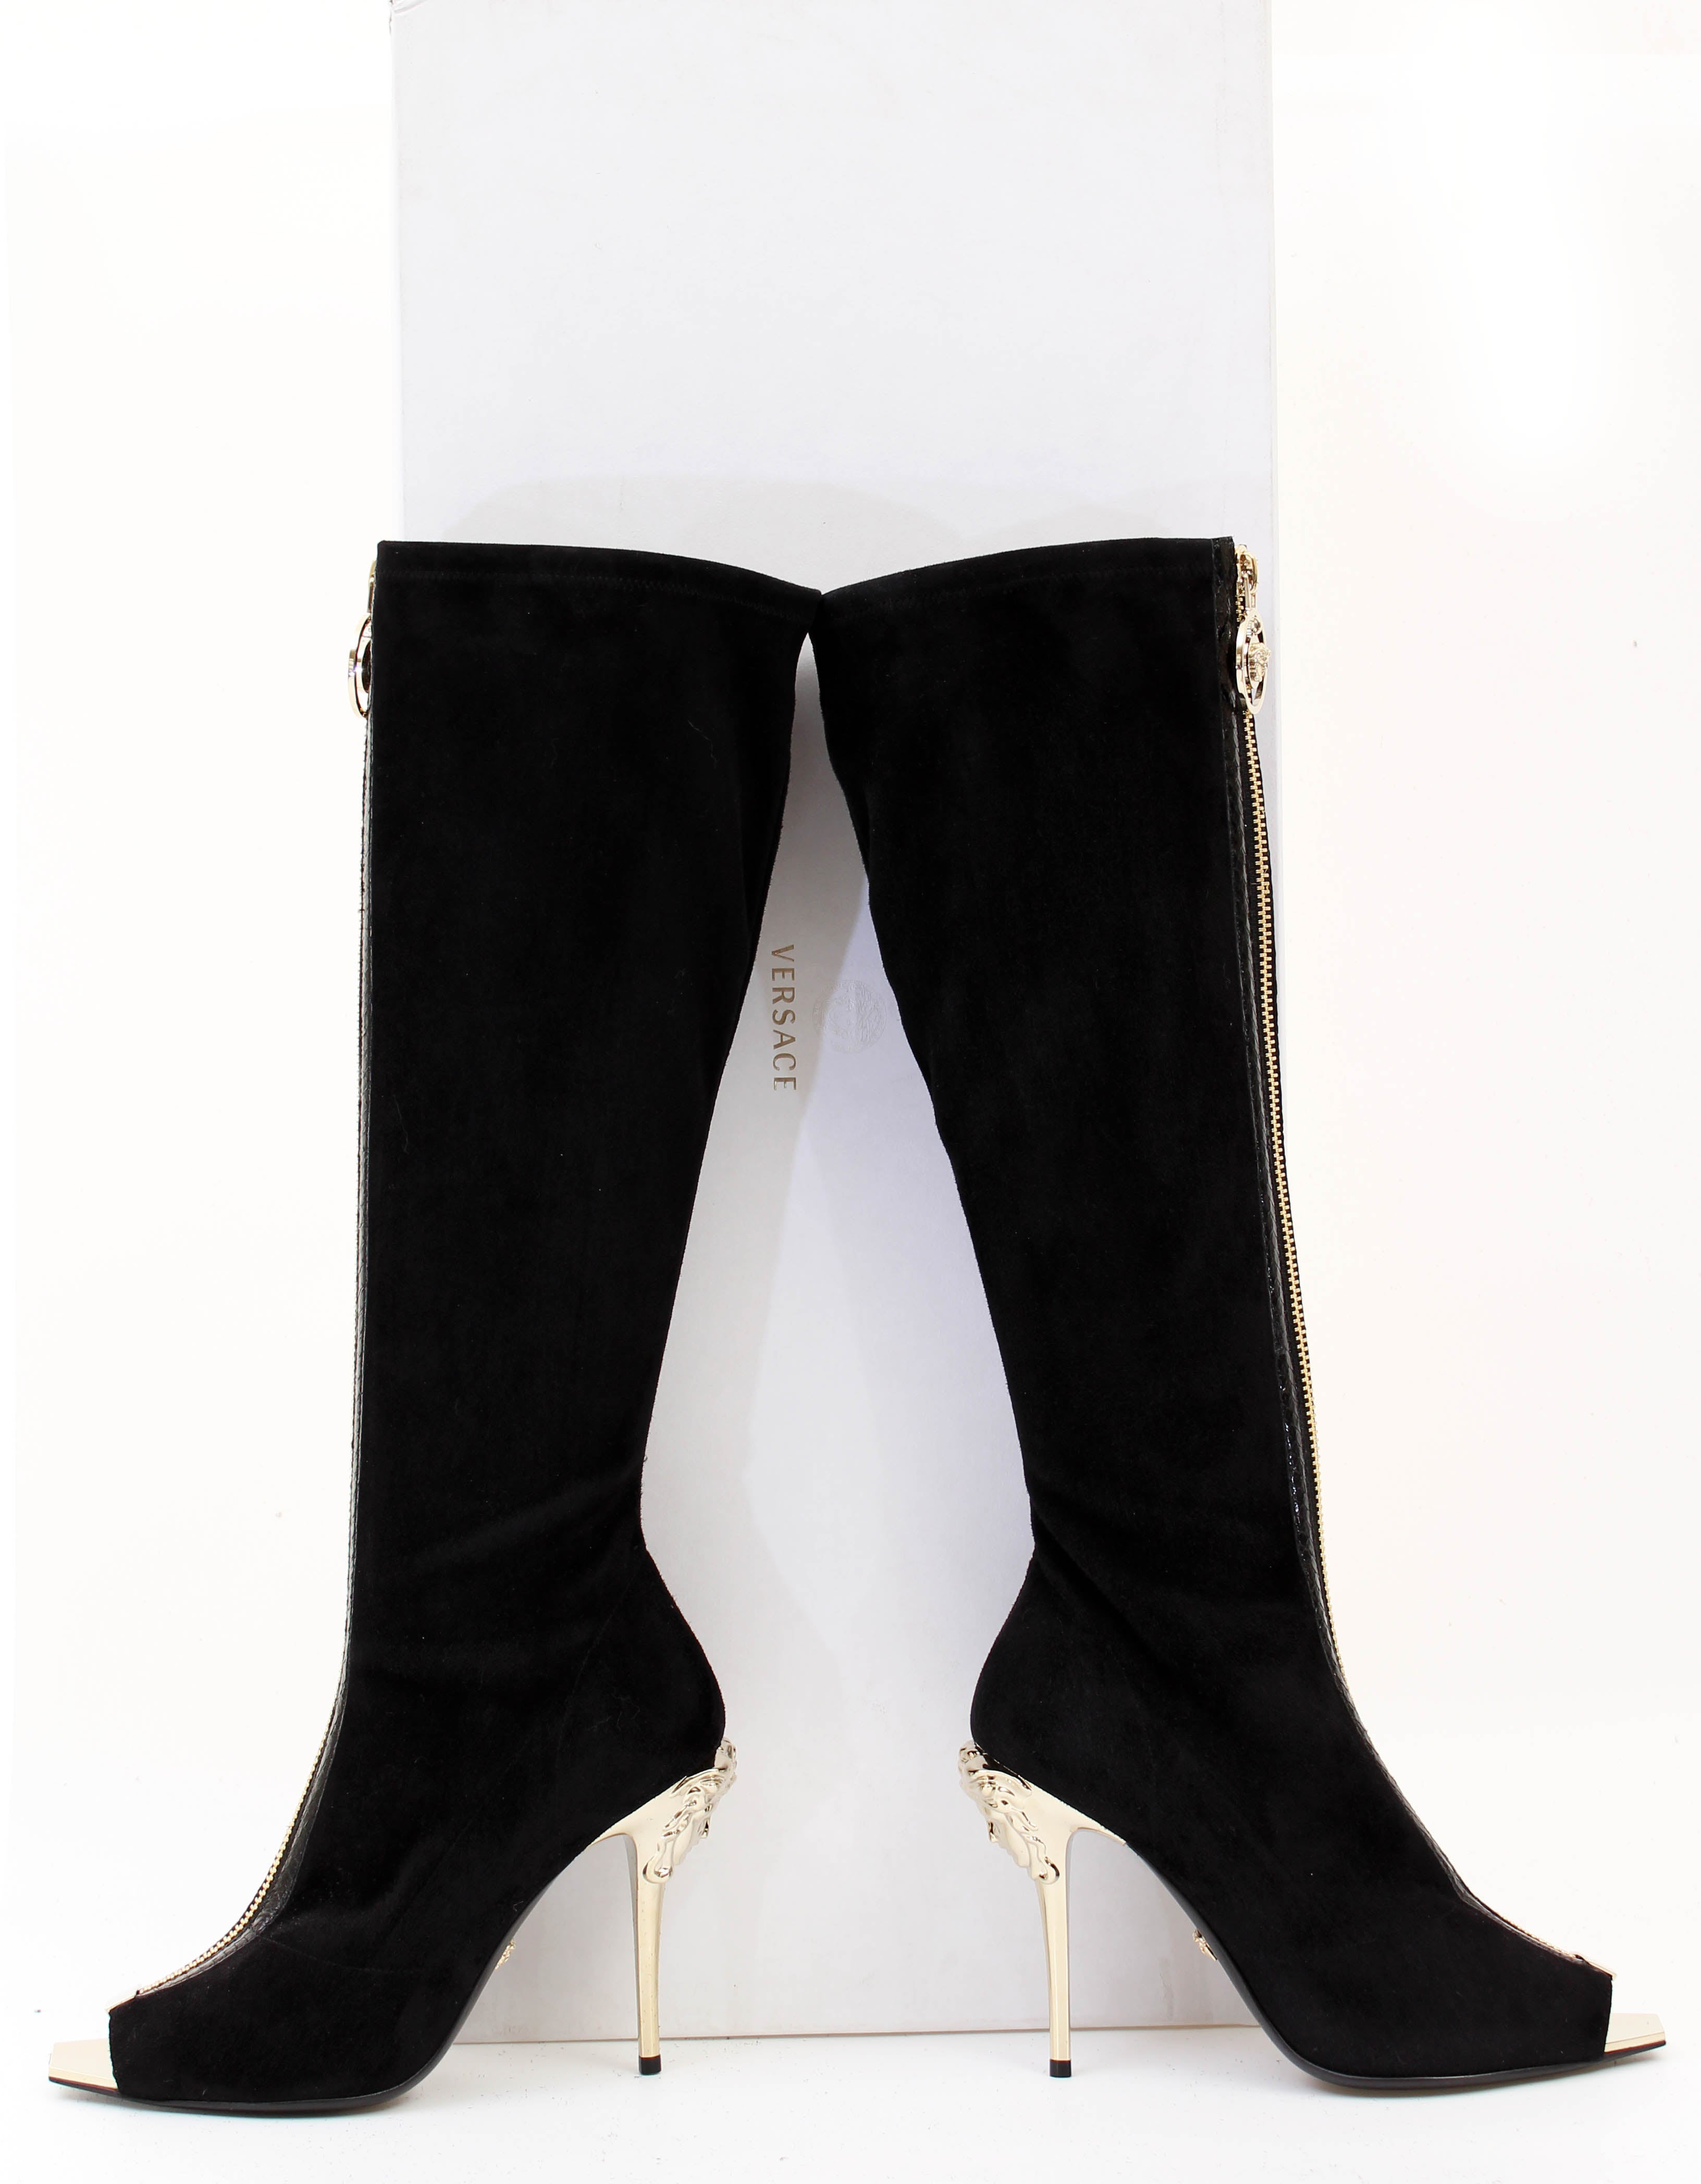 c812da70768 New VERSACE Knee High Black Suede Boots with gold Medusa heel and open toe  For Sale at 1stdibs